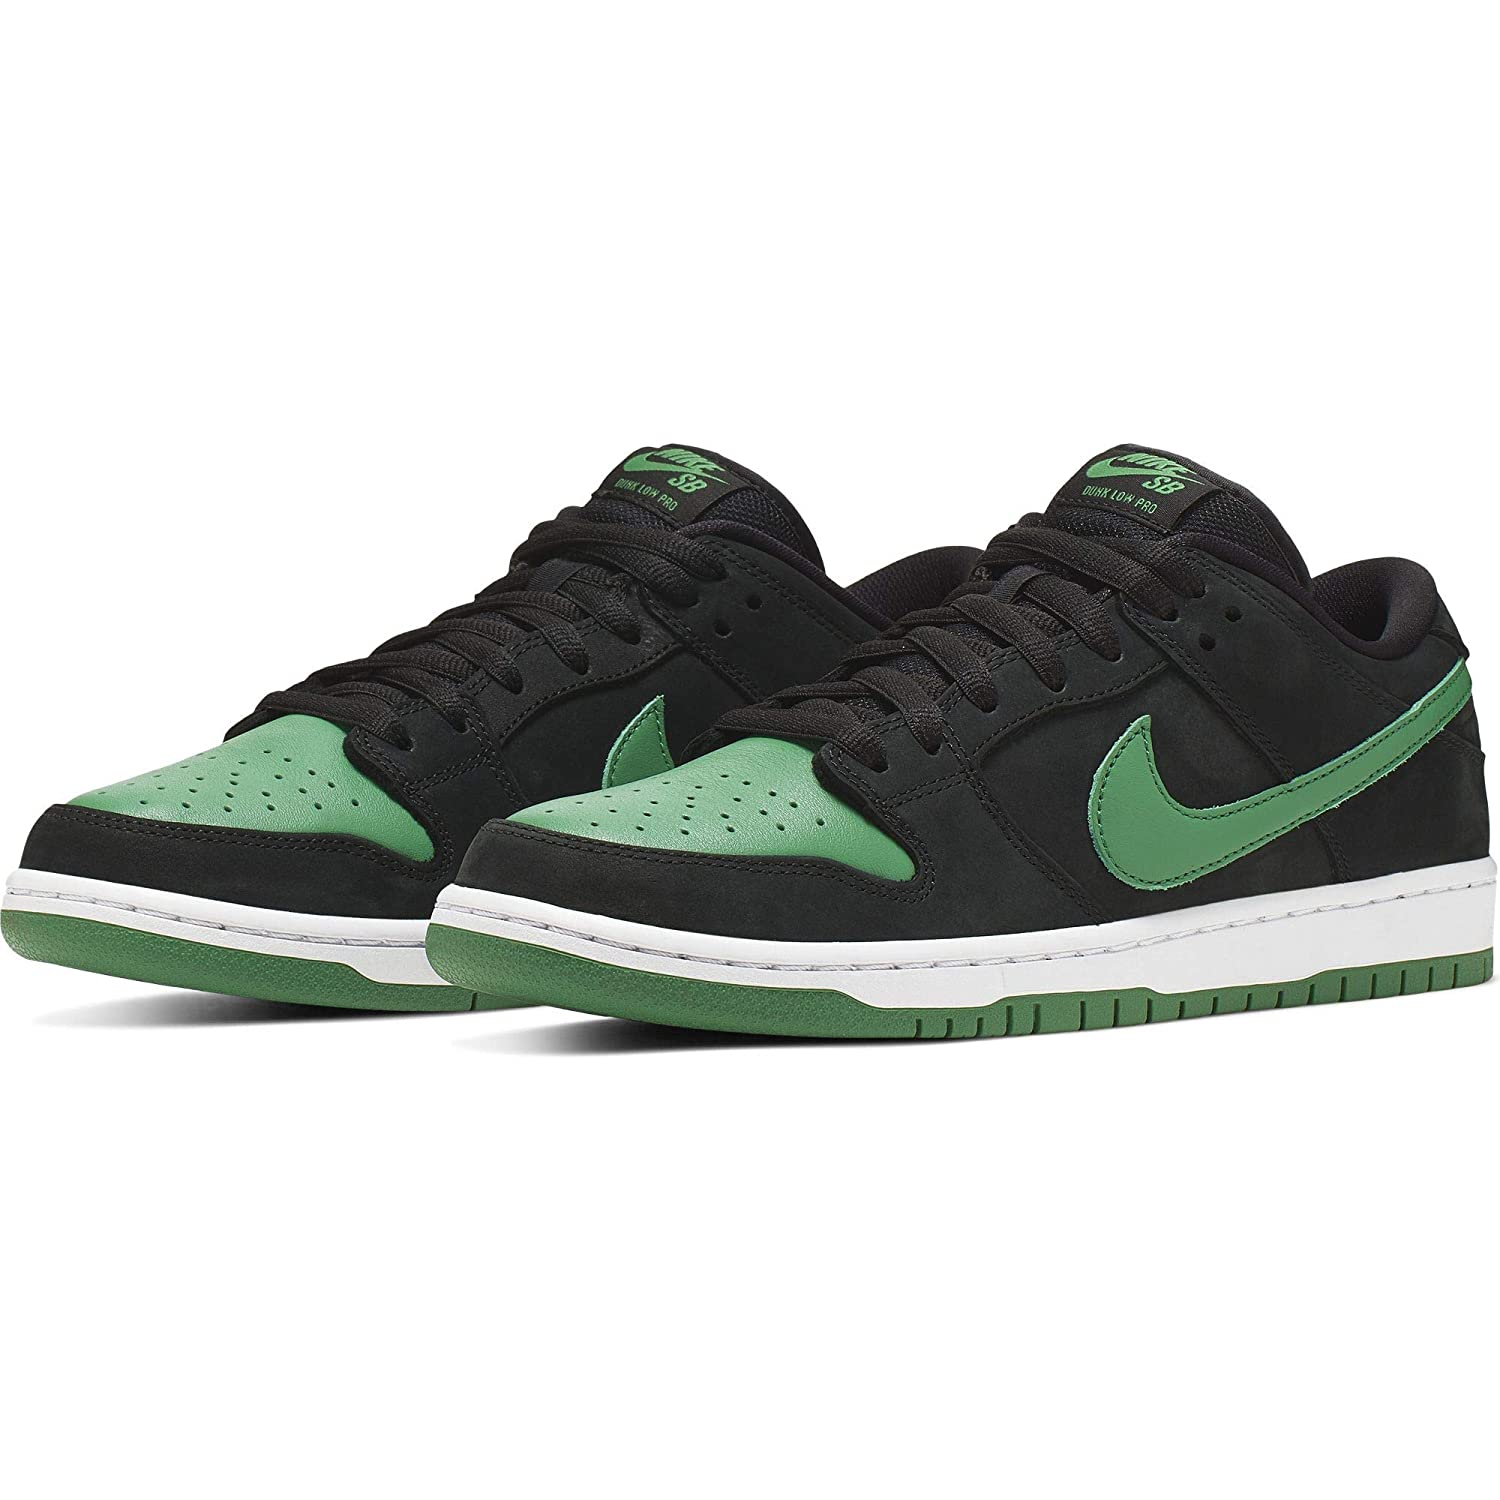 buy online 3a477 07dfb Nike SB Dunk Low Pro Shoes Mens